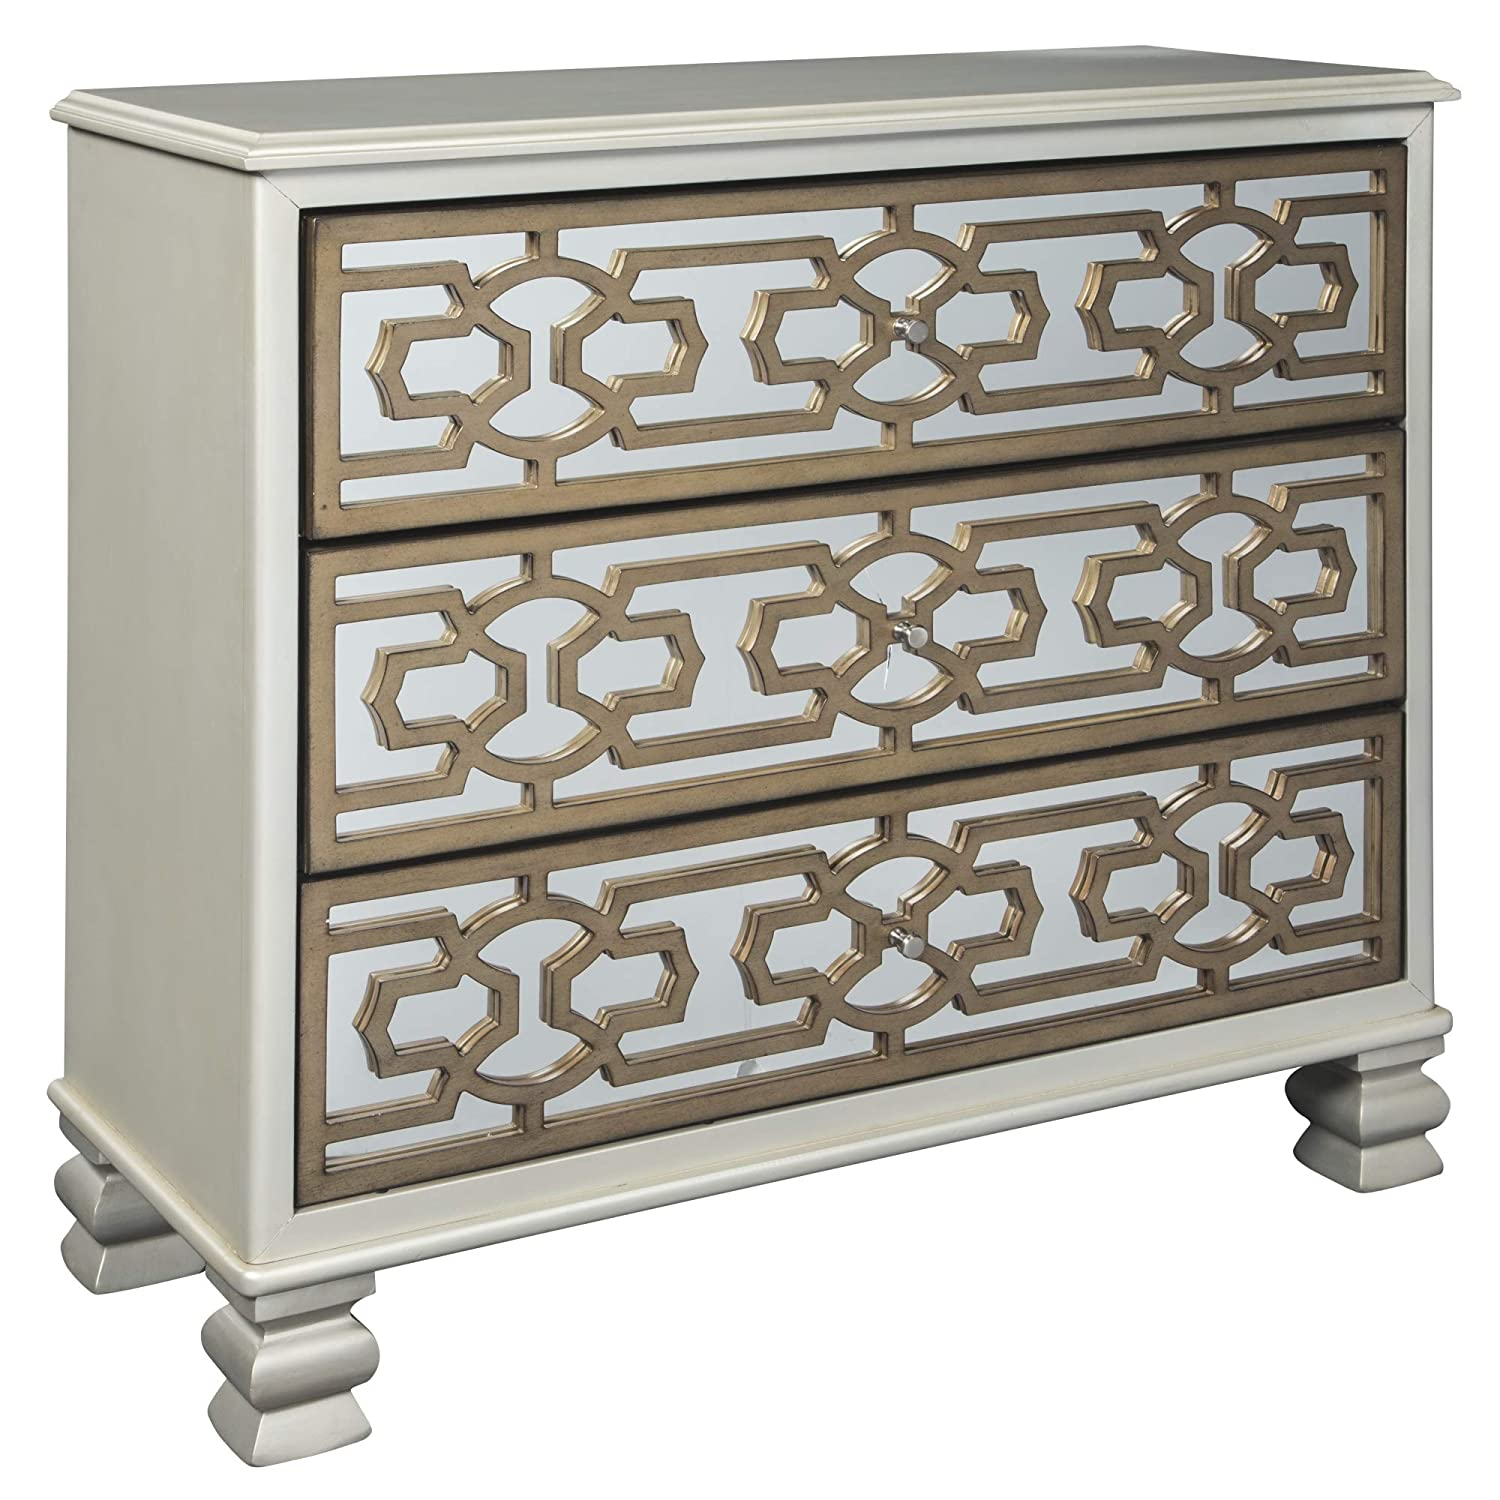 Genial Ashley Furniture Signature Design   Senzernell 3 Drawer Accent Cabinet    Contemporary   Geometric Pattern On Mirror Panel Drawer Fronts    Silver/Gold Finish